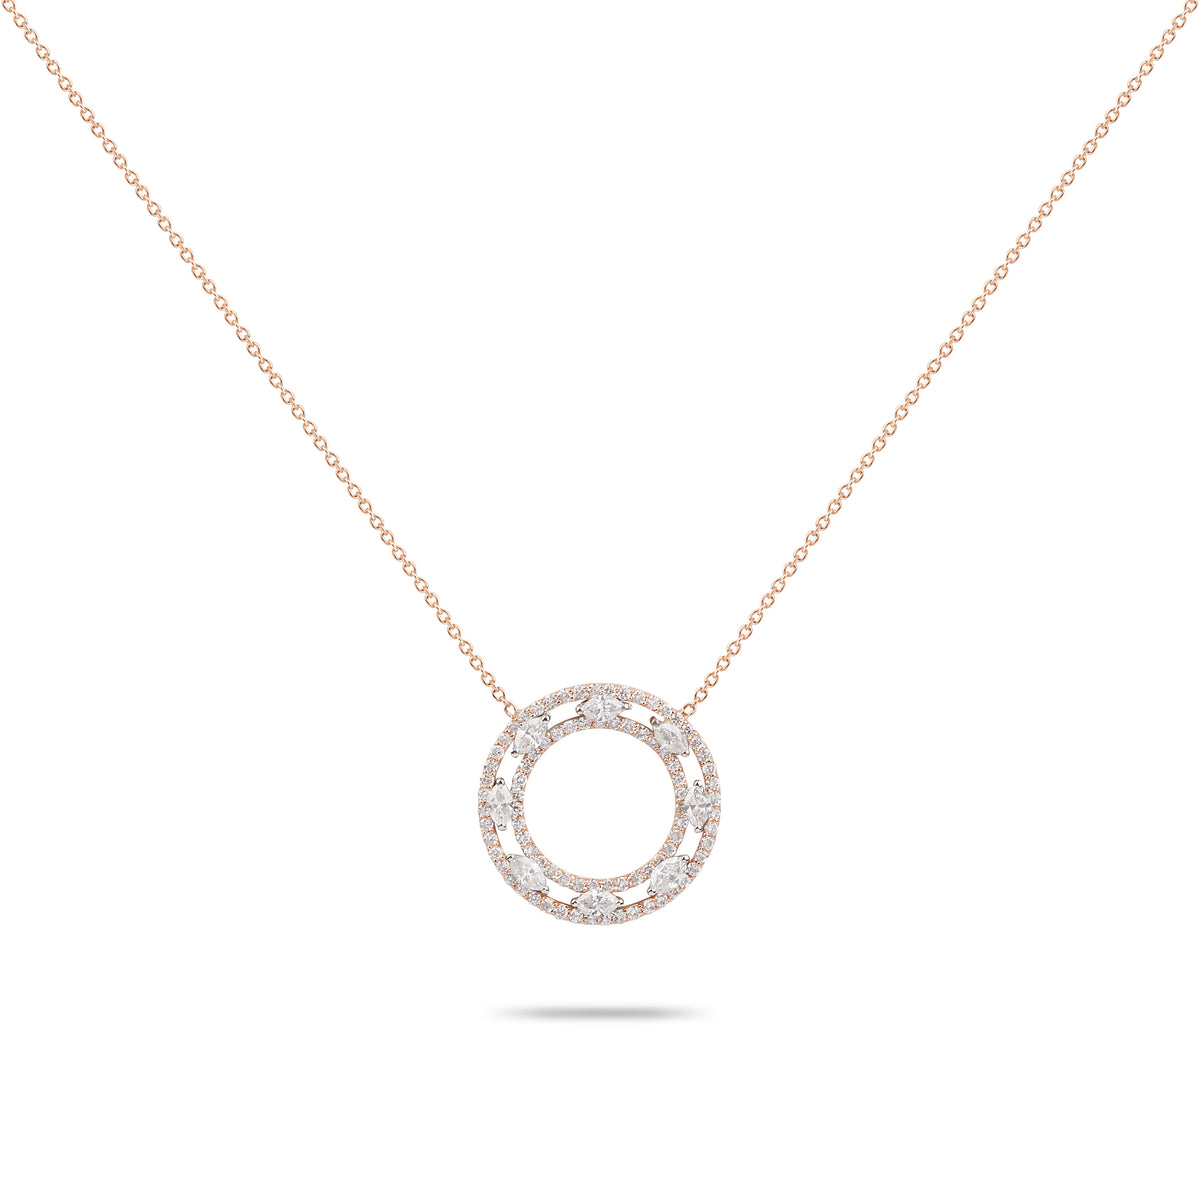 Rose Gold & Diamonds Necklace